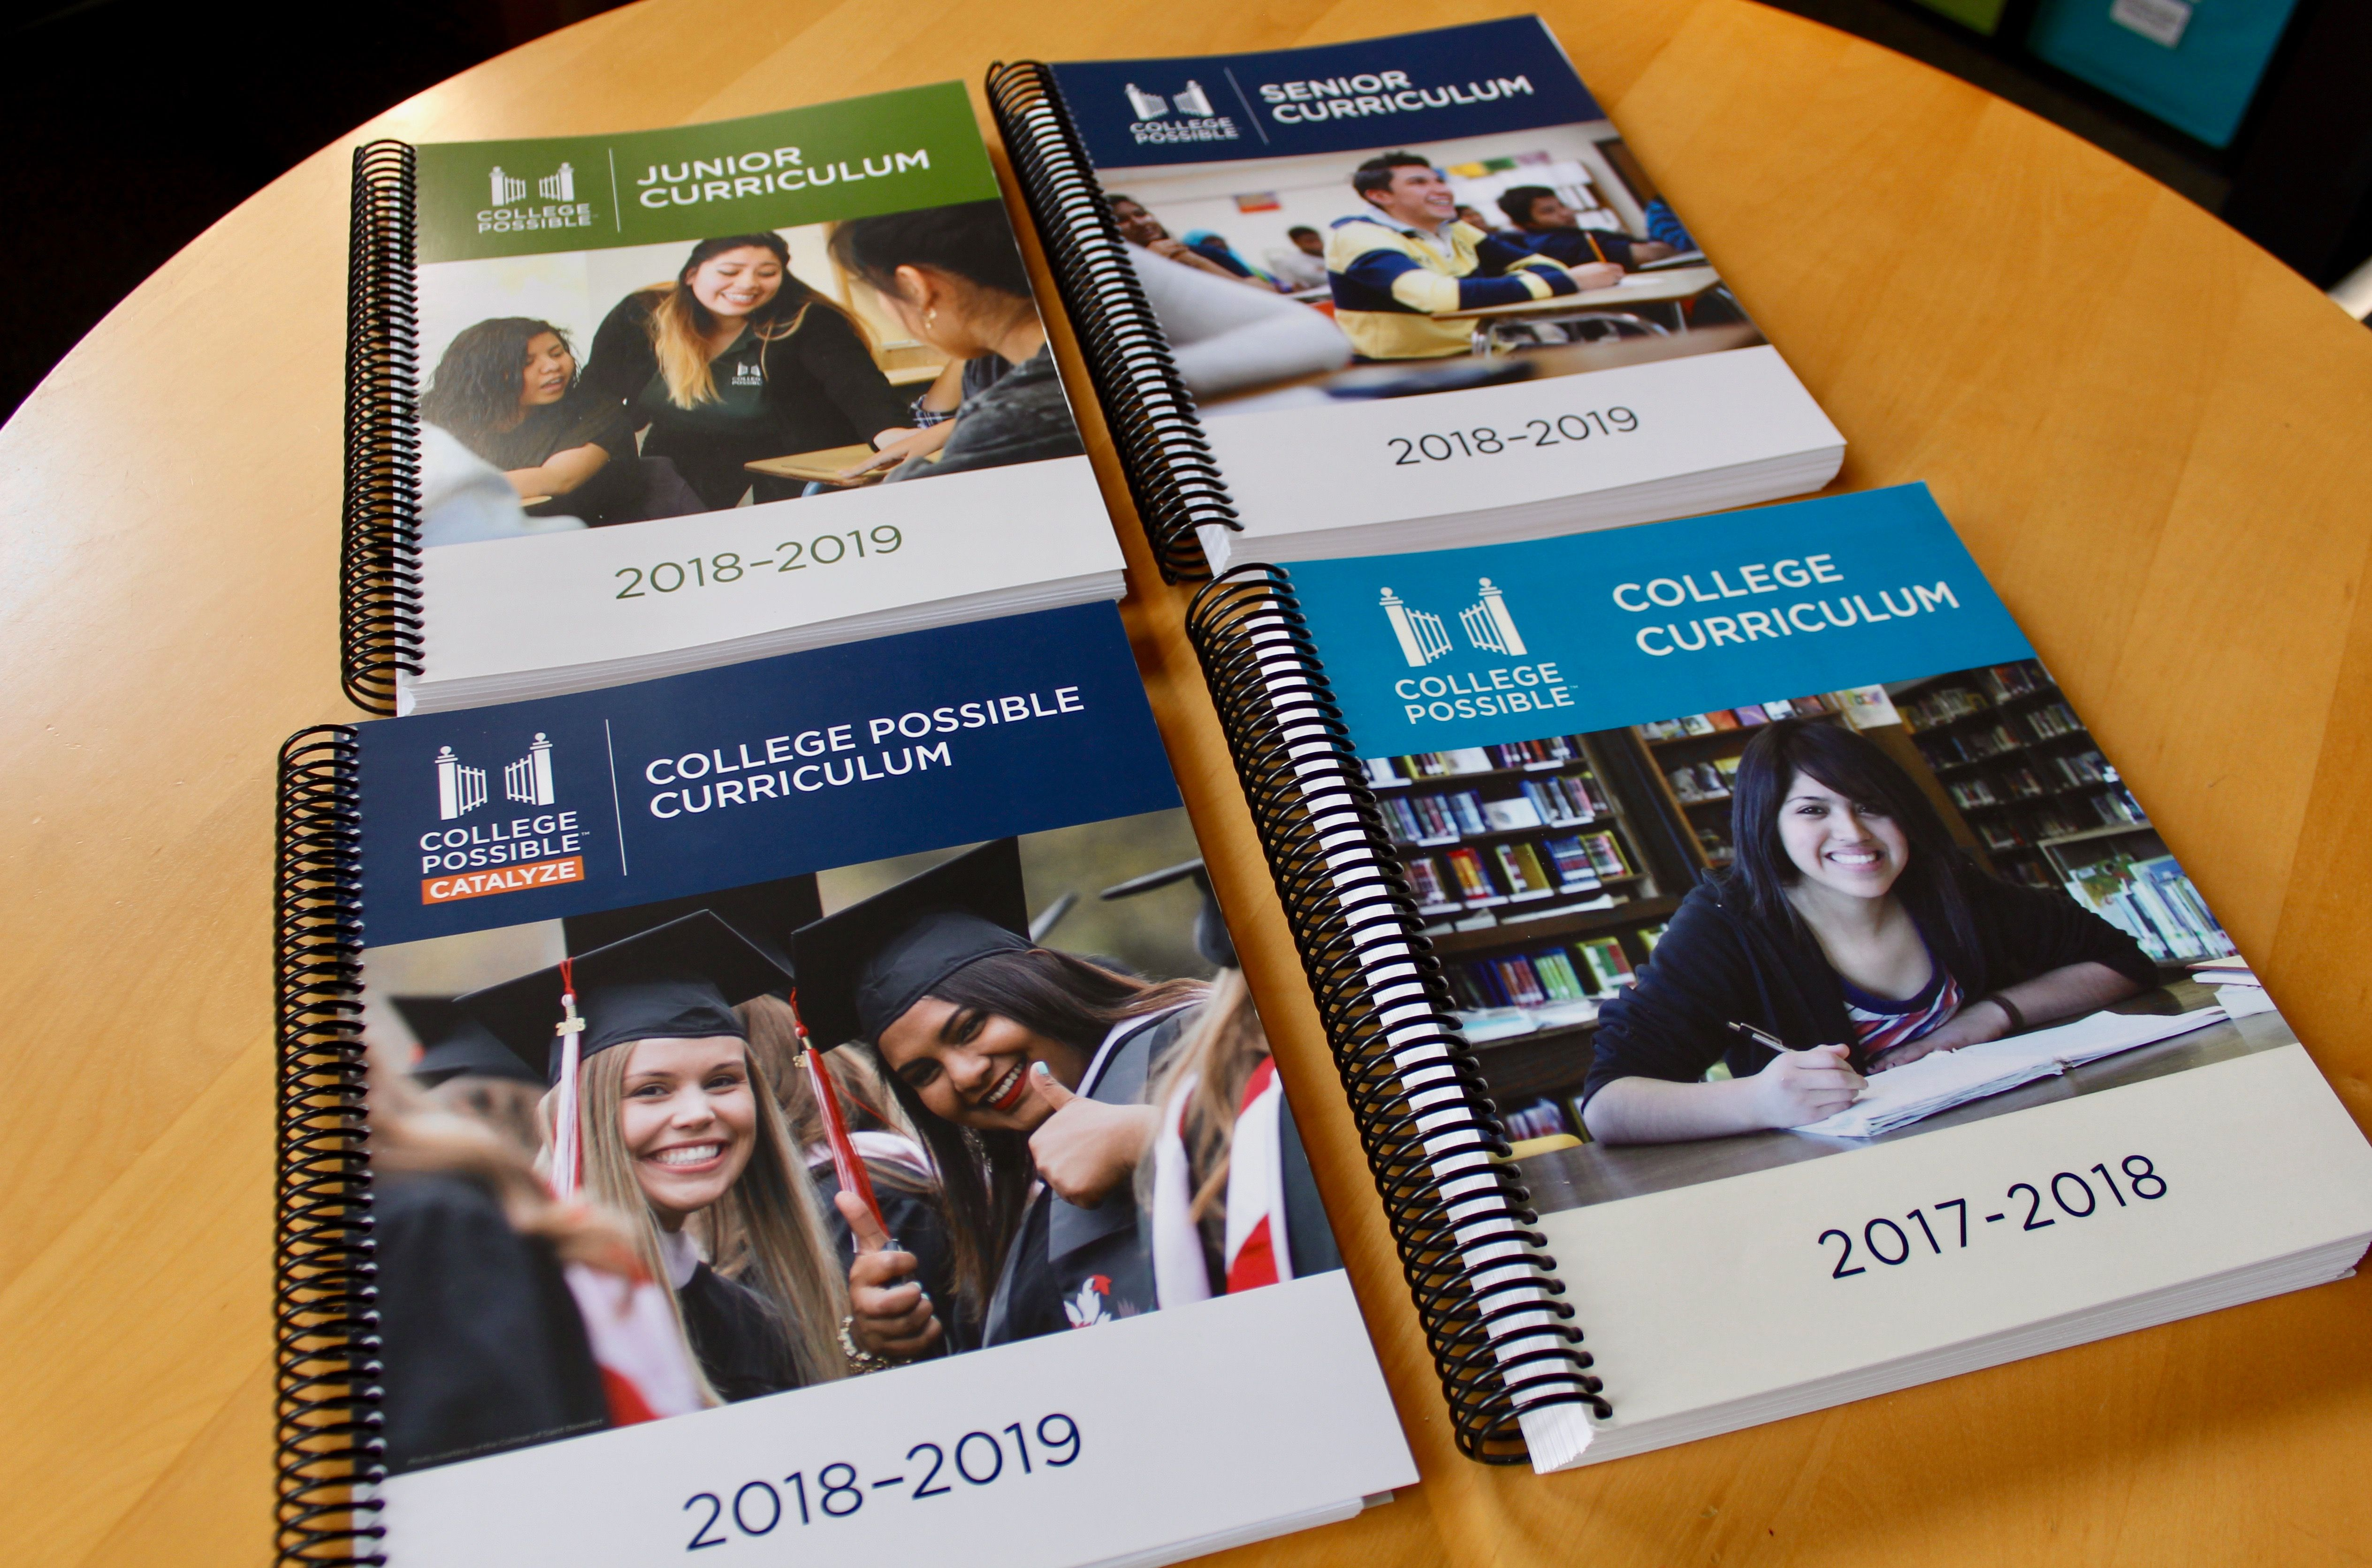 Spiral Bound Manuals, Catalogues, and Training Materials - Minuteman Press Central Minneapolis